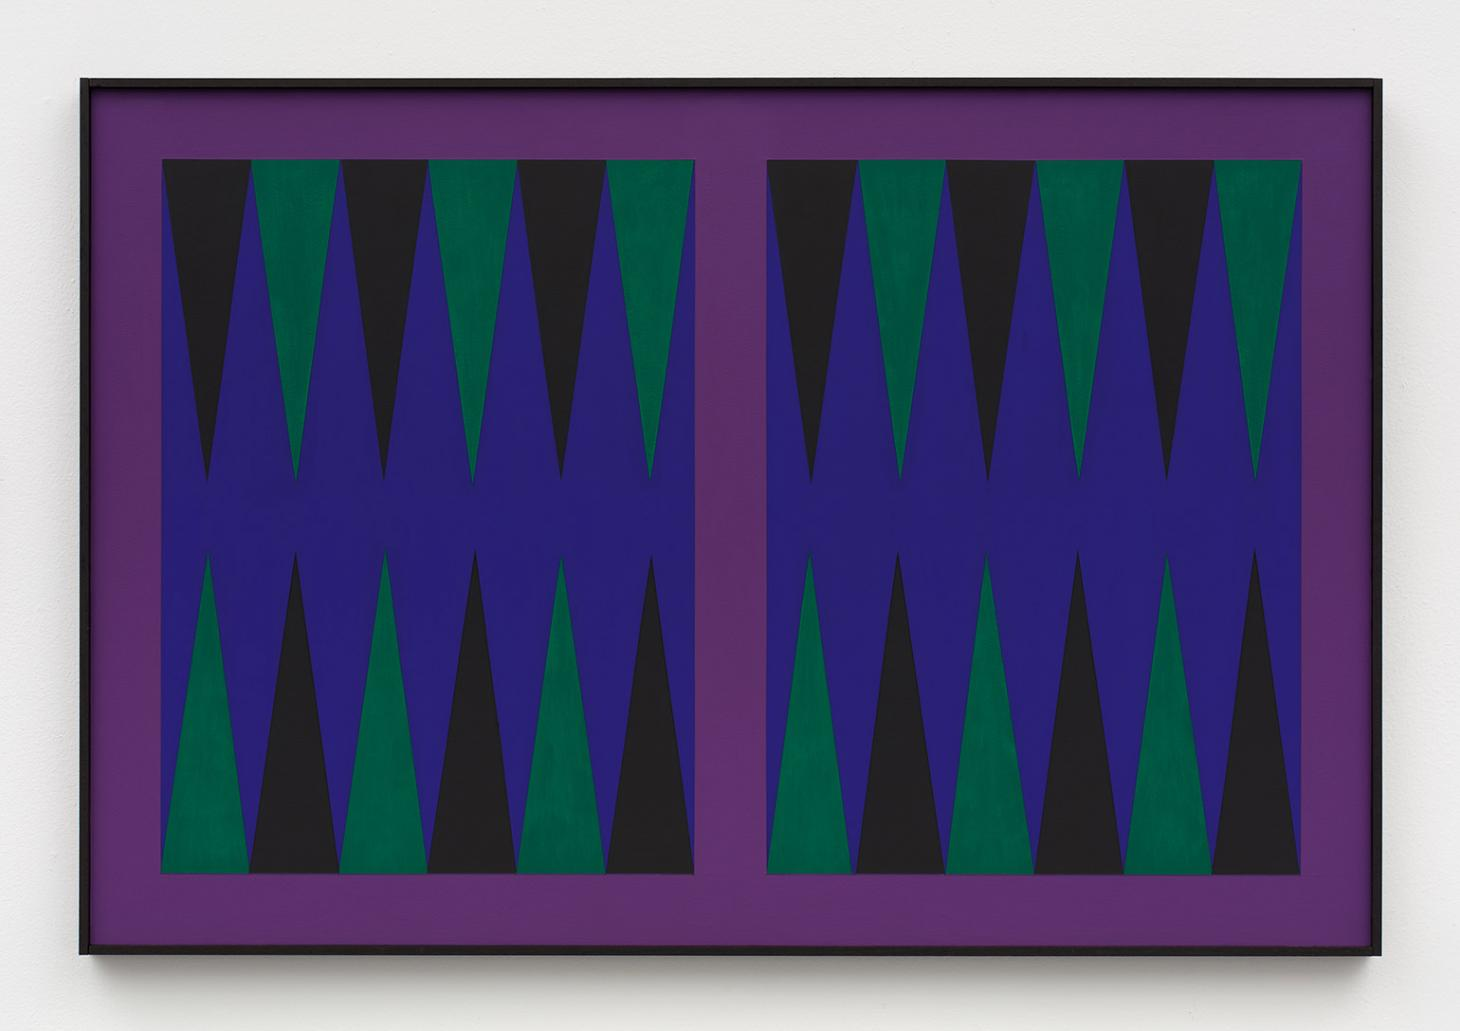 Grand Slam (ultramarine board, violet bar, black ace point, light green point), 2018, by Zak Kitnick